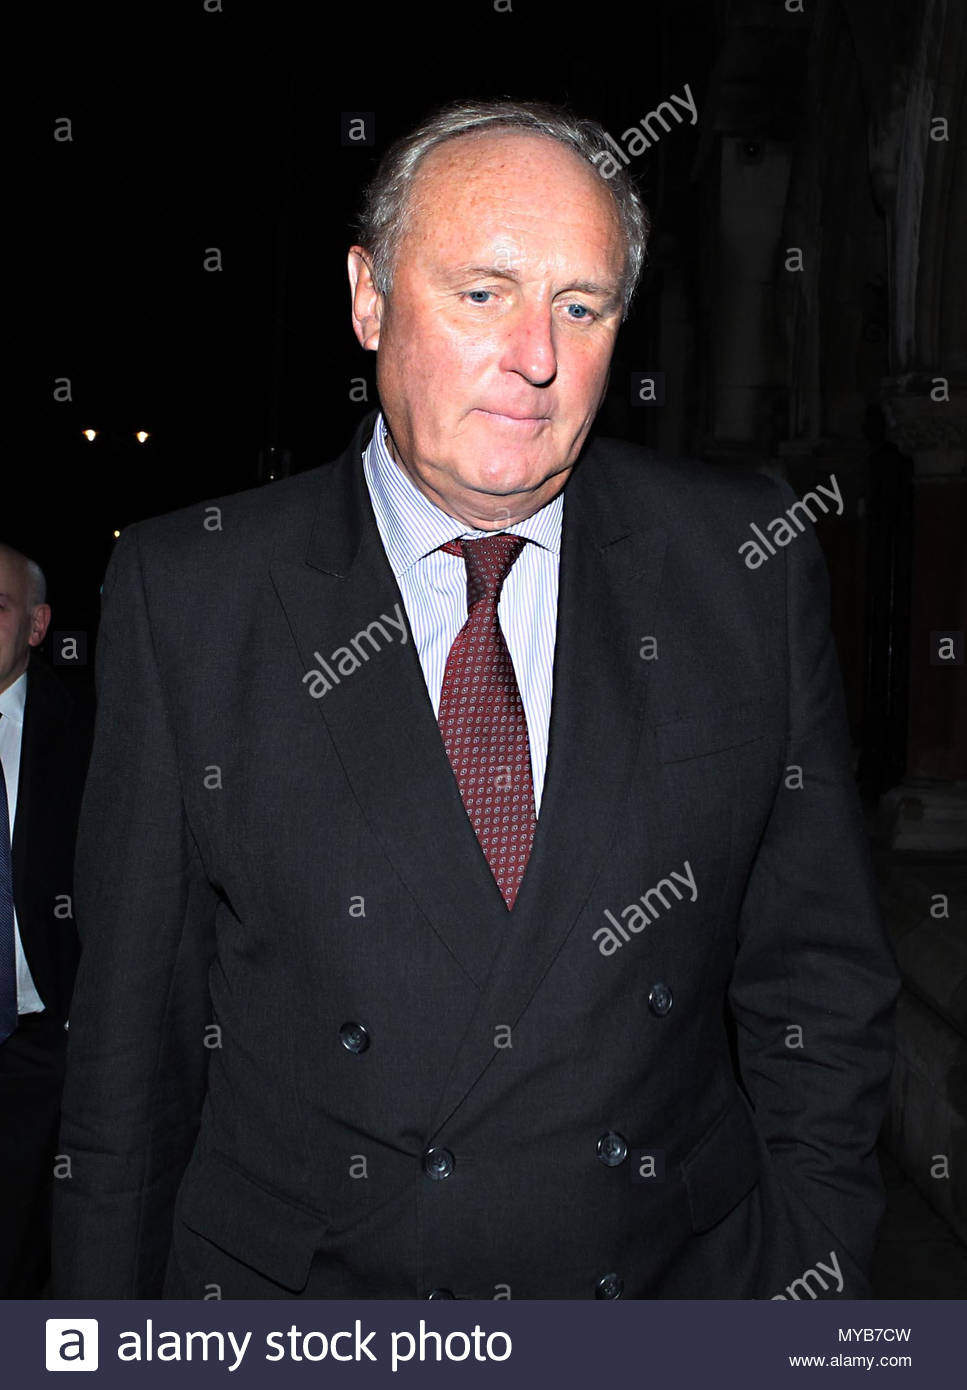 """File photo dated 6/2/2012 of Paul Dacre who has been appointed chairman and editor-in-chief of Associated Newspapers, in a move which will see him """"step back"""" from his role as editor of the Daily Mail from November, the paper's owners DMGT have said. - Stock Image"""